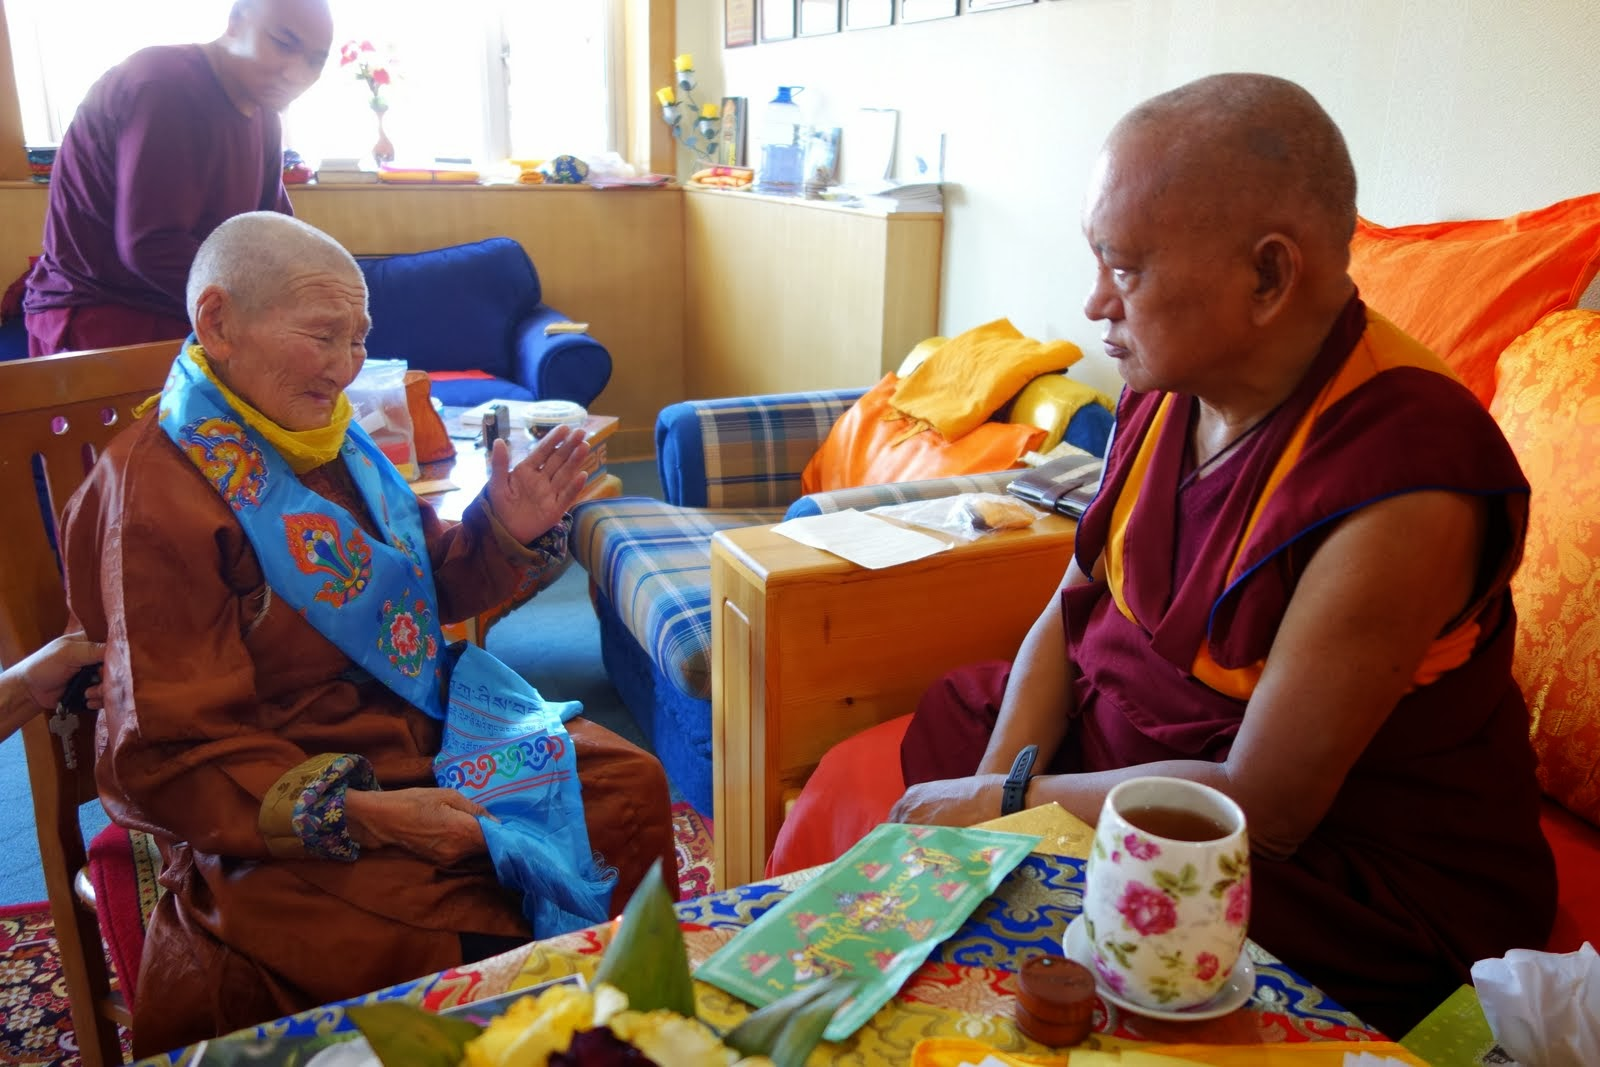 """The old Mongolian woman said she just needed to see Rinpoche's face before she died. This was her main request. Here she is saying to Rinpoche: """"I am ready to die, please take me to a good place after death. I don't want to be born human it is too difficult."""" After her request Rinpoche gave her lungs and recited many prayers for her. She cried continuously, so grateful. Aug 25, 2013. Photo Ven. Roger Kunsang."""